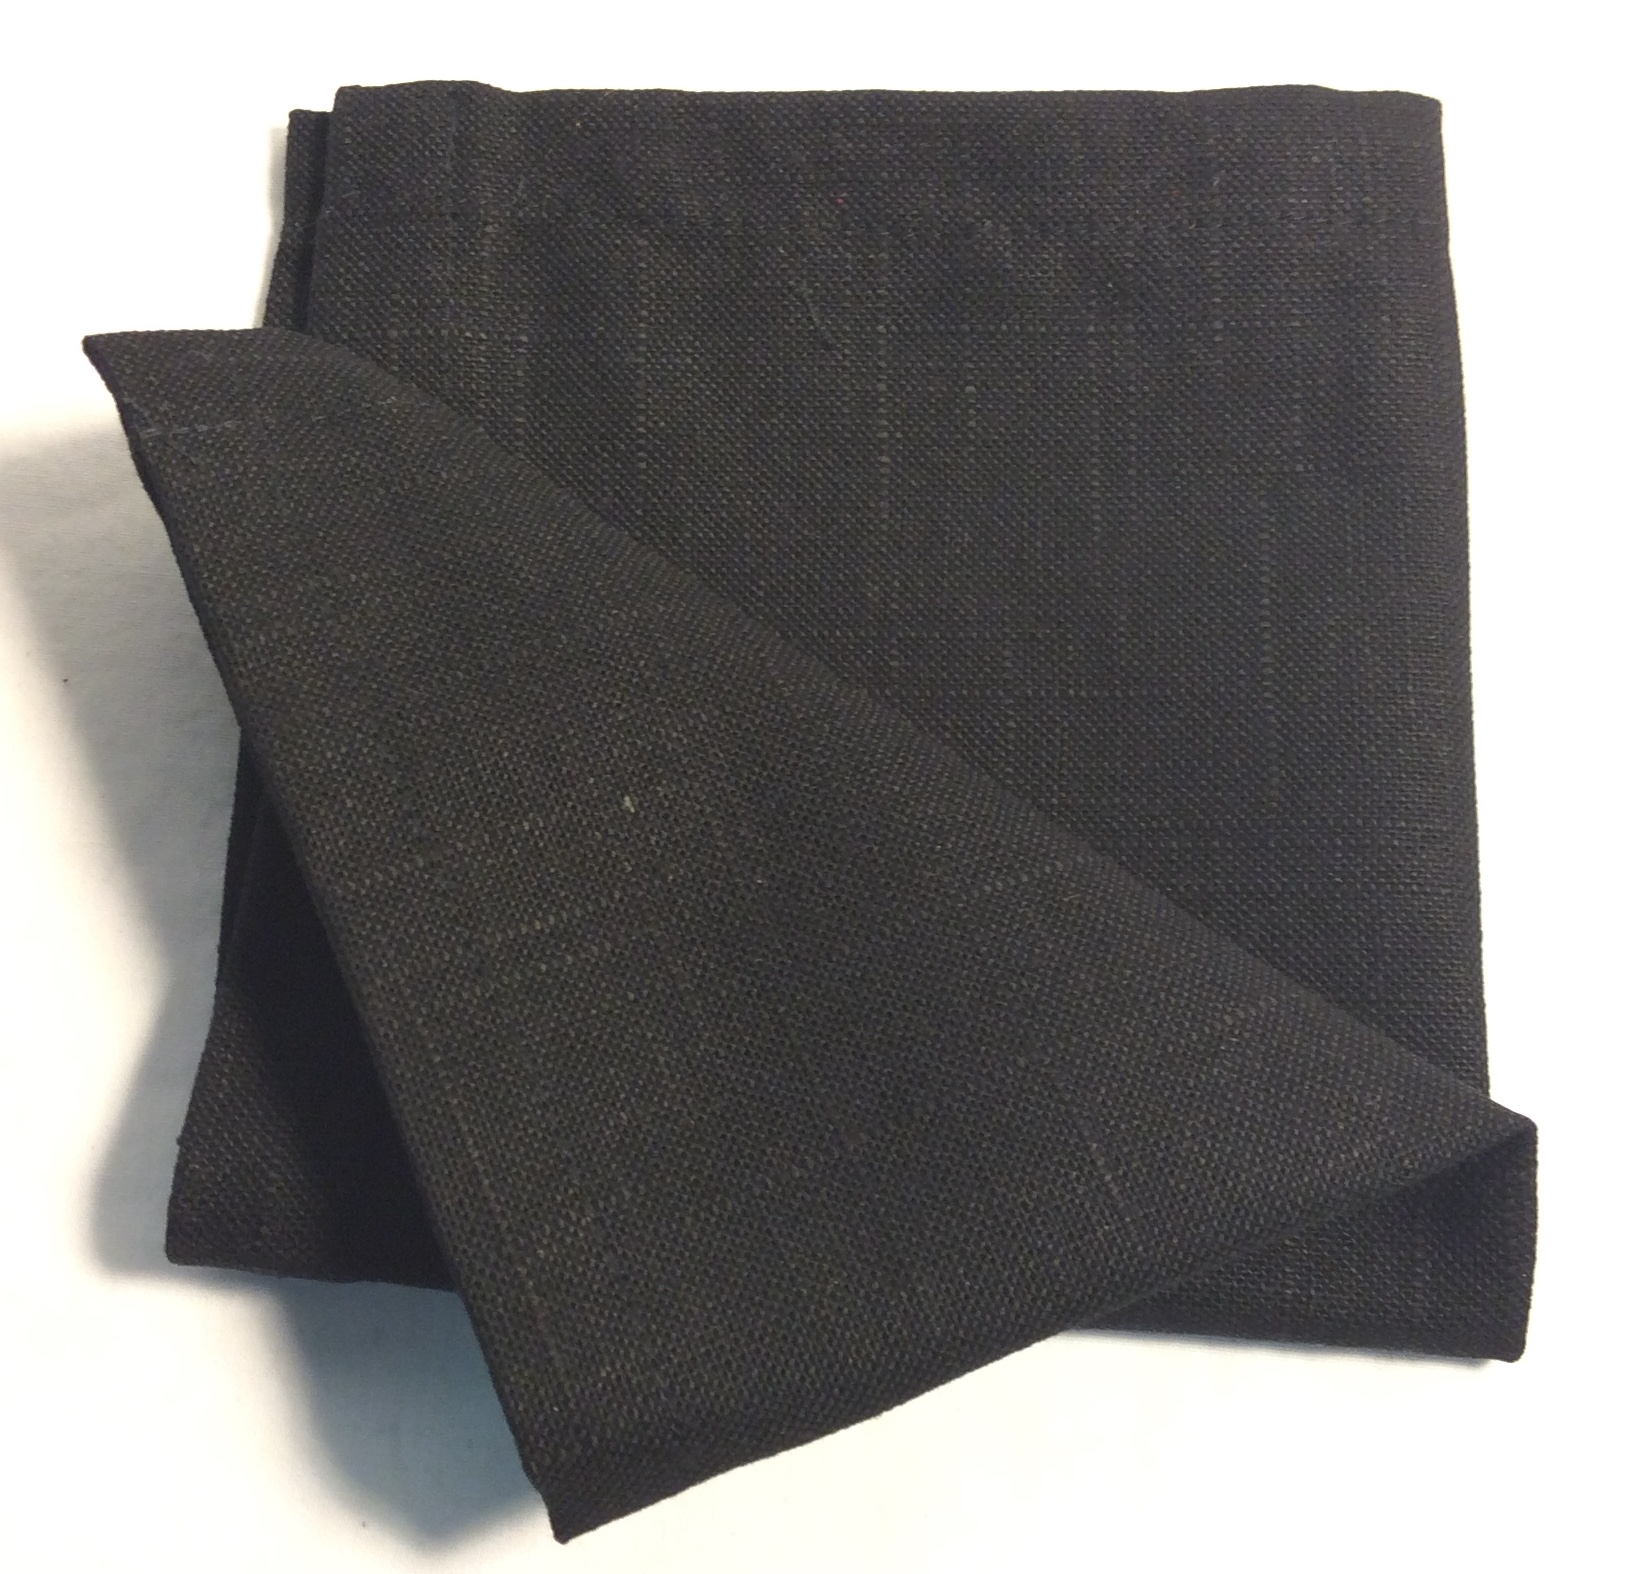 "Black square cloth napkins 12""x12"" - x20"